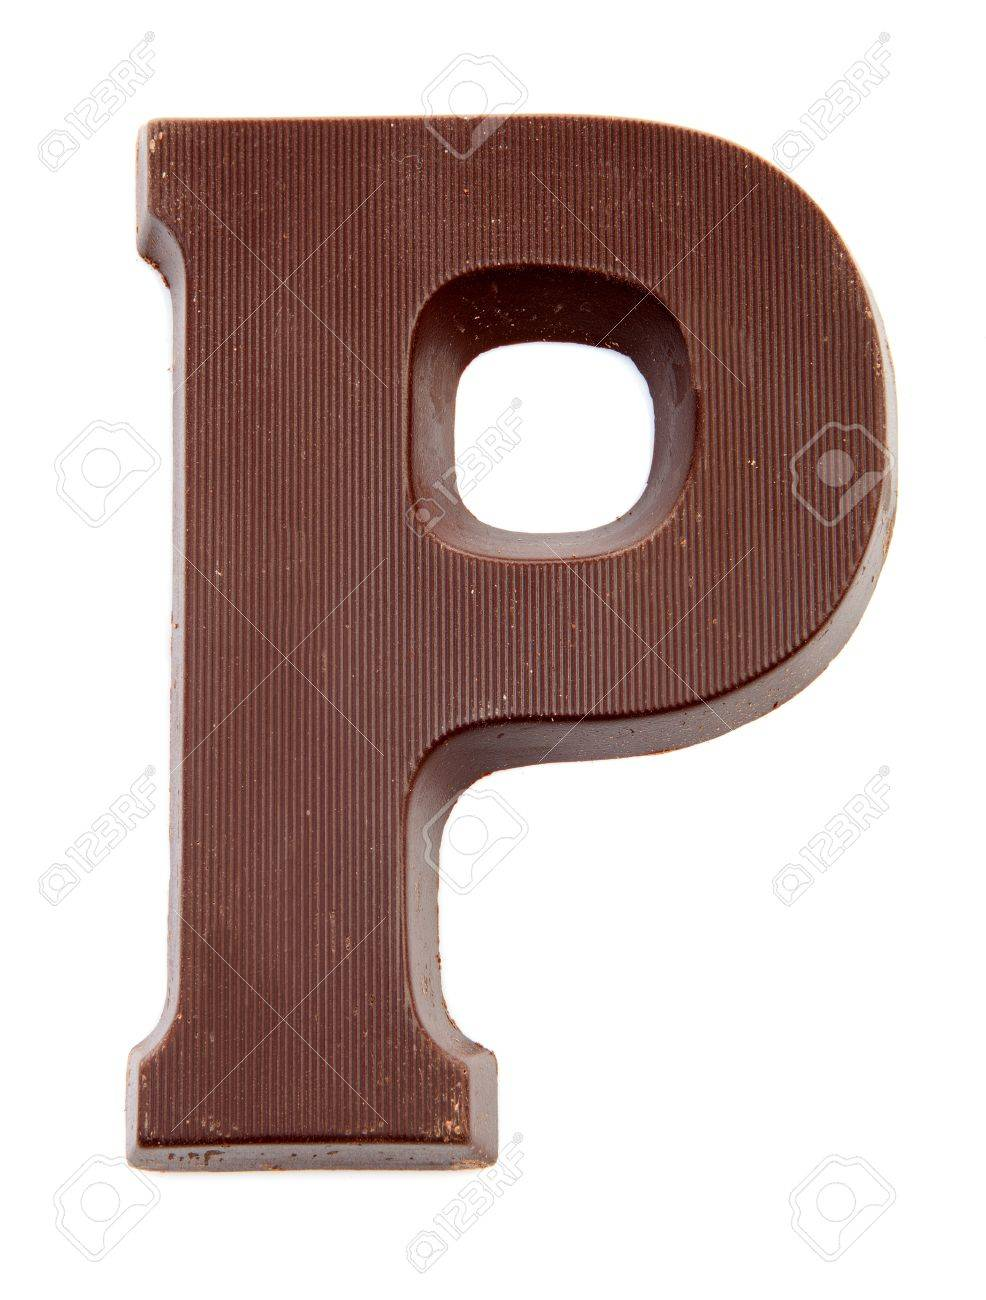 Chocolate letter P for Sinterklaas, event in the Dutch in december over white background Stock Photo - 17807218